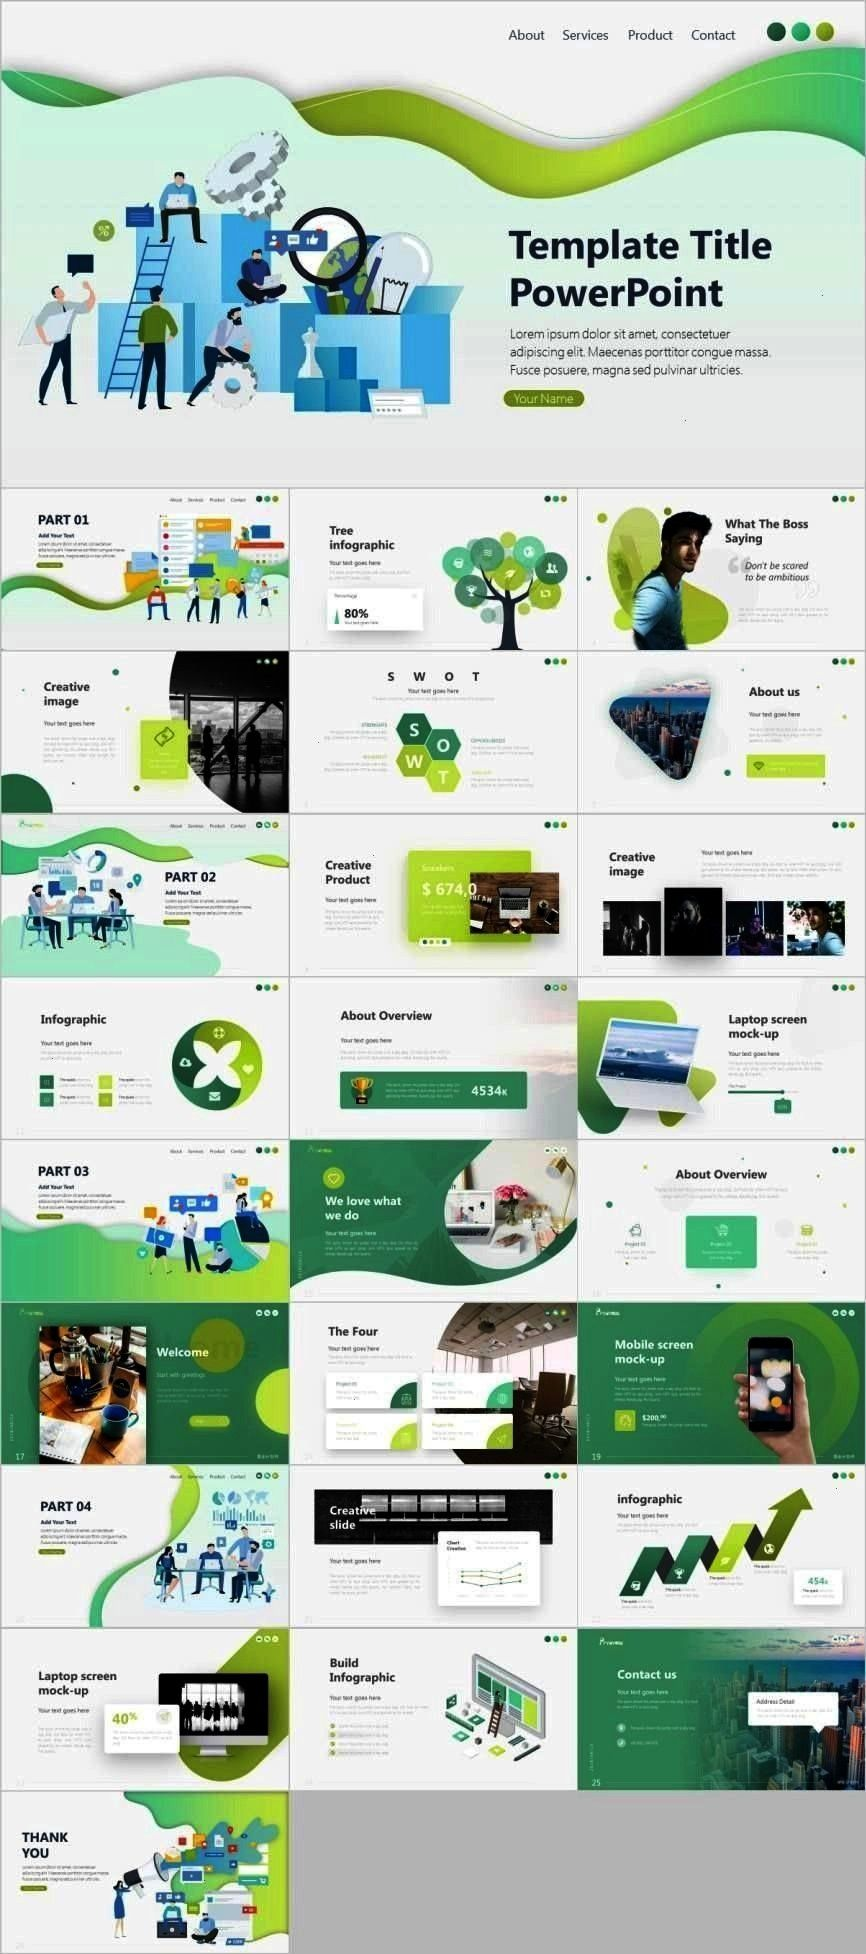 creative company report template  Best multipurpose  creative company report template  multipurpose  creative company report template  Best multipurpose  creative company...